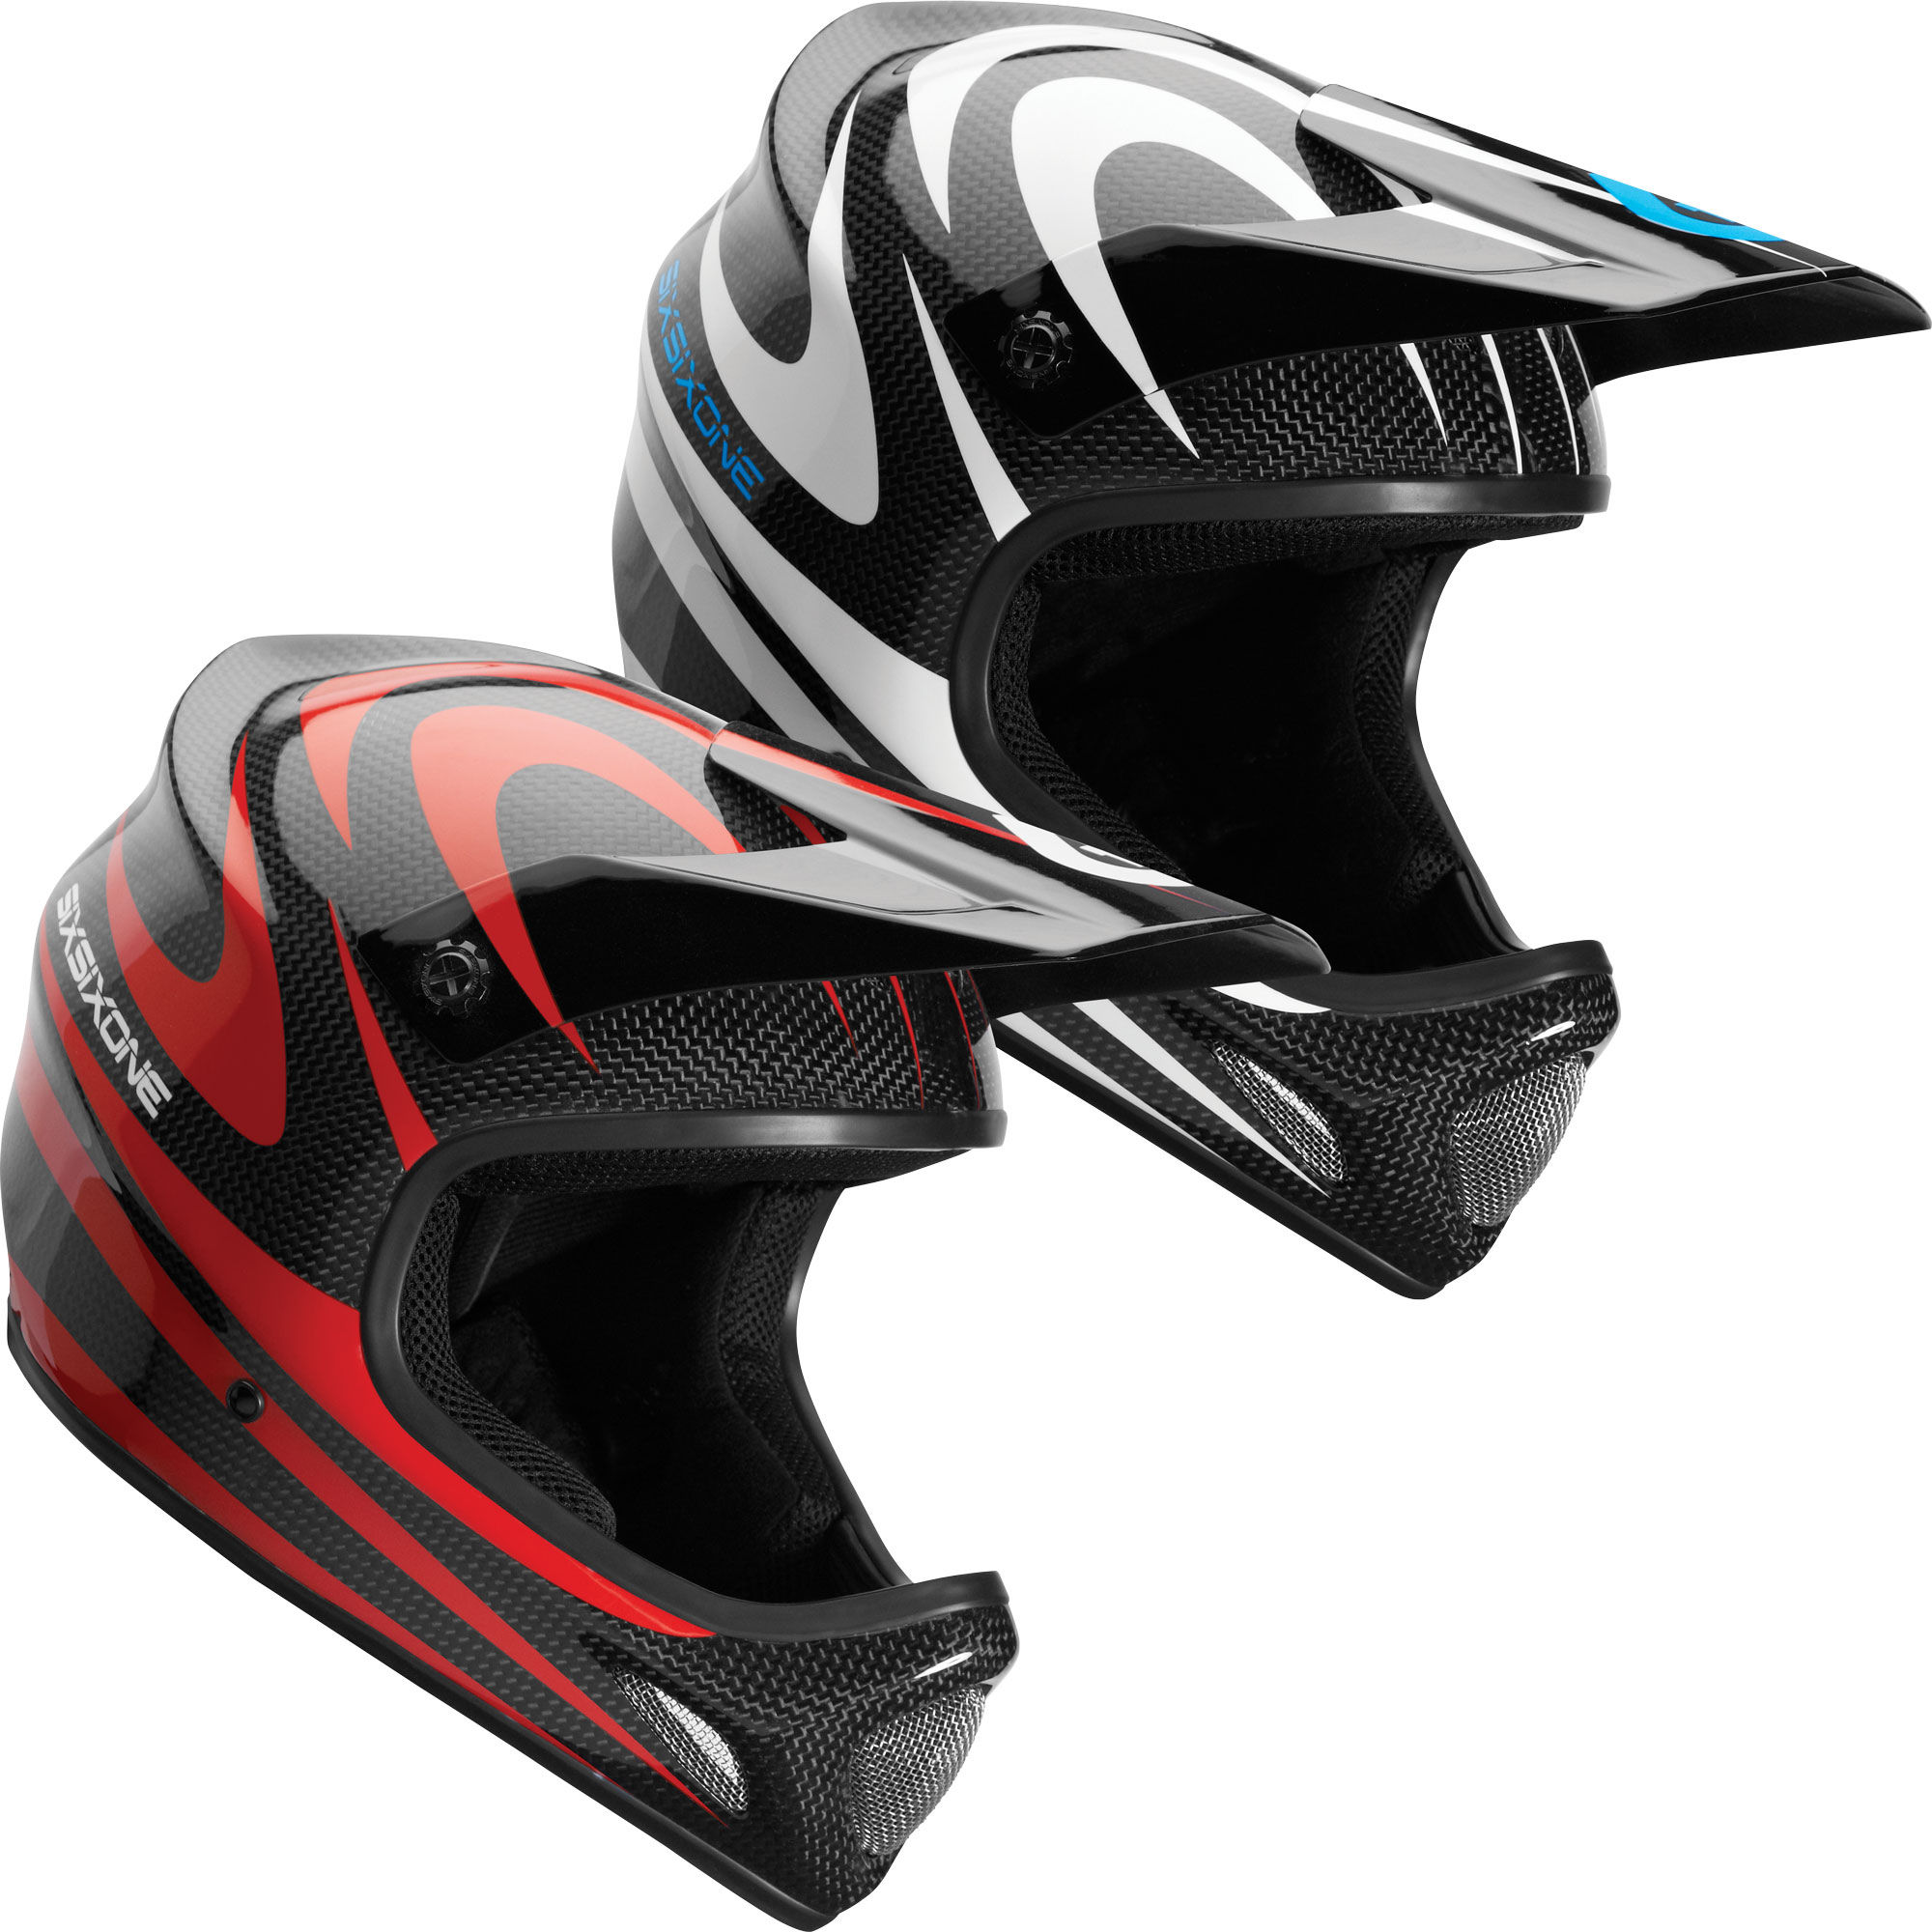 wiggle sixsixone evo carbon full face helmet 2012. Black Bedroom Furniture Sets. Home Design Ideas